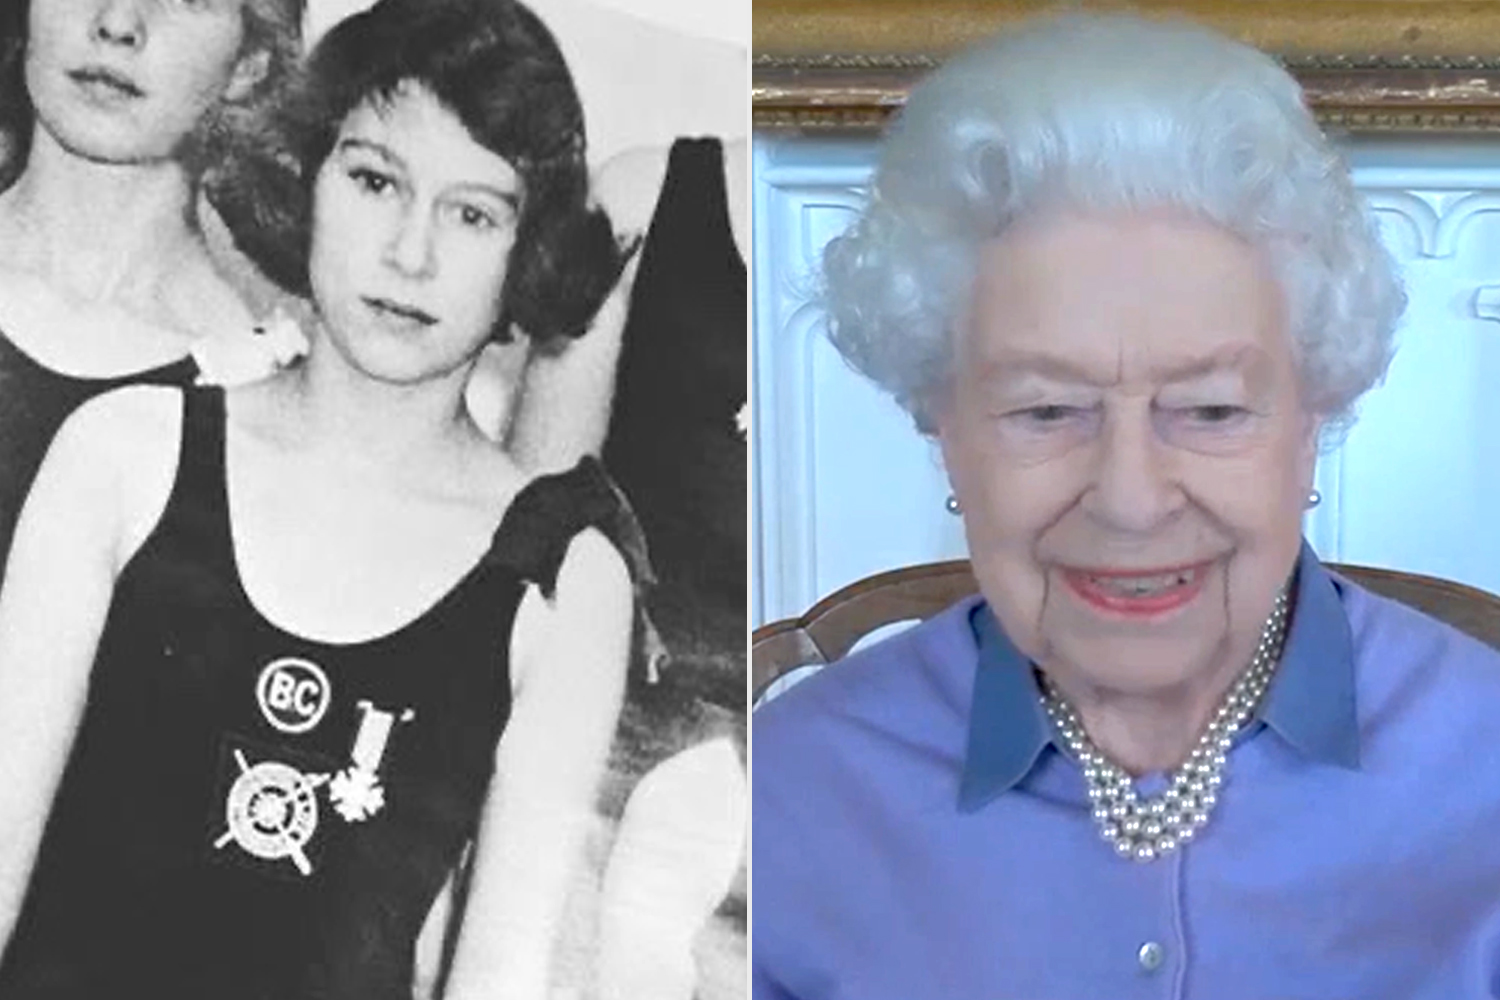 The Queen became the first young person in the Commonwealth to achieve the @rlsscw